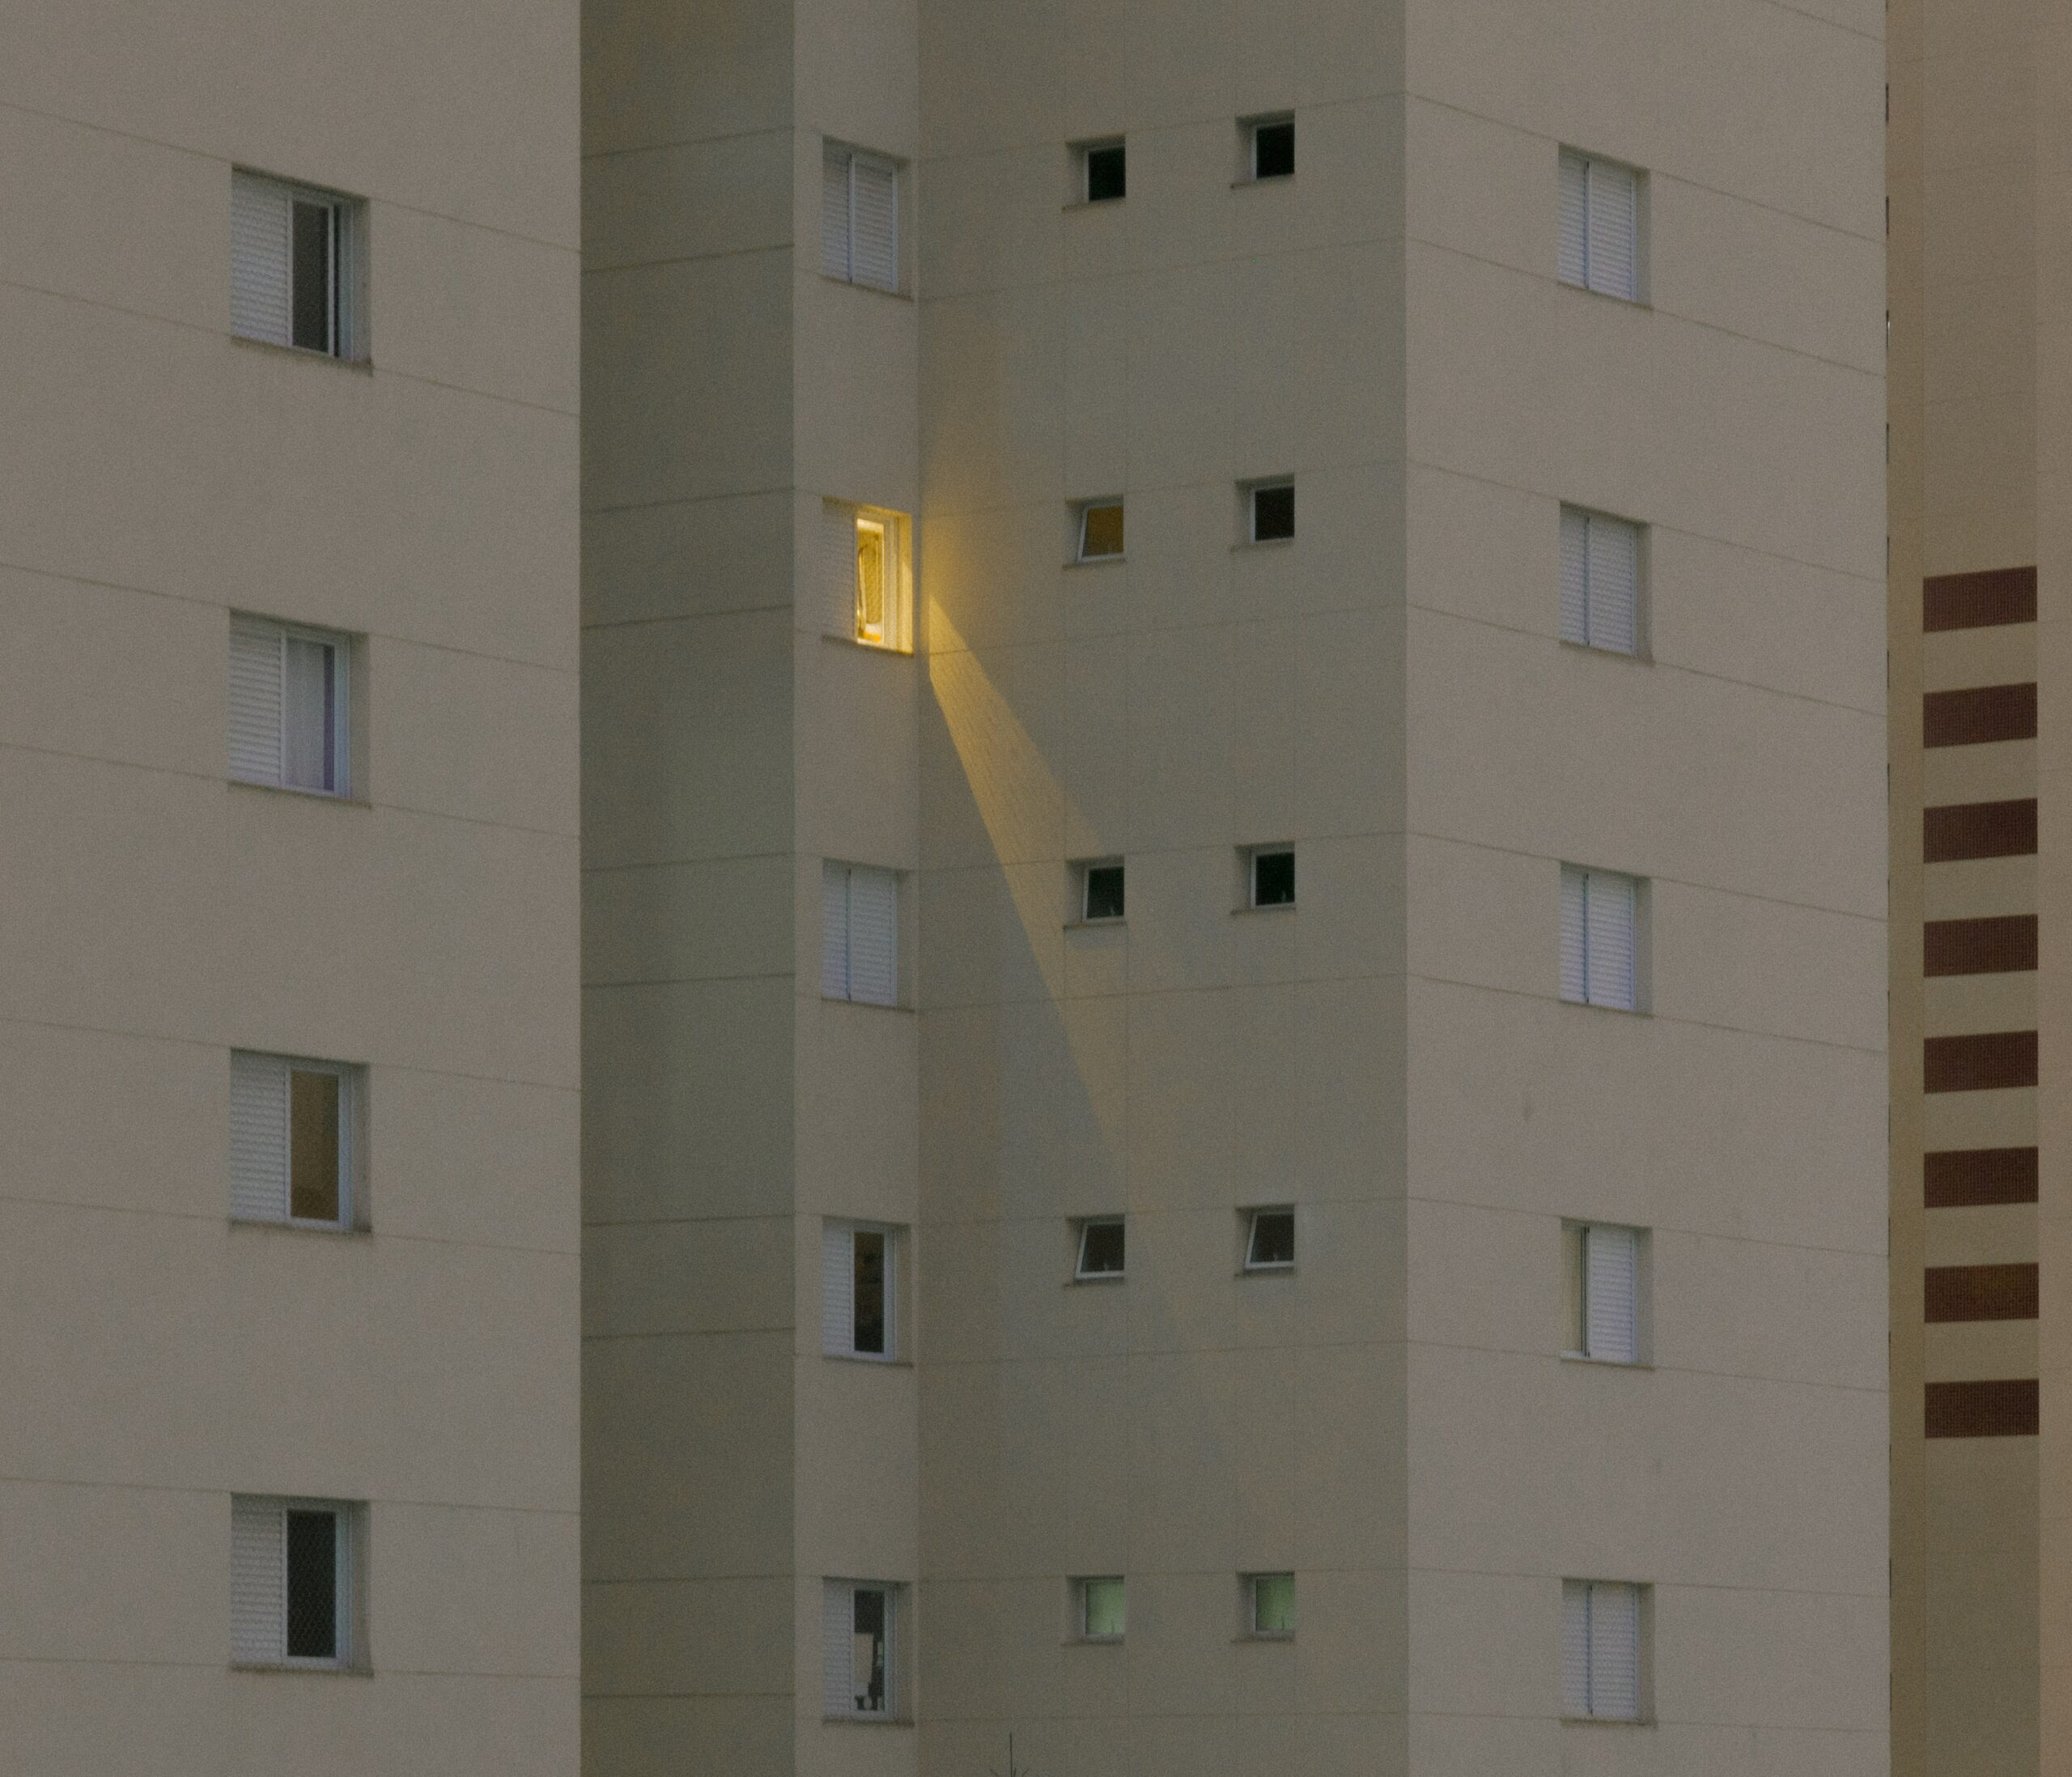 light on in an apartment